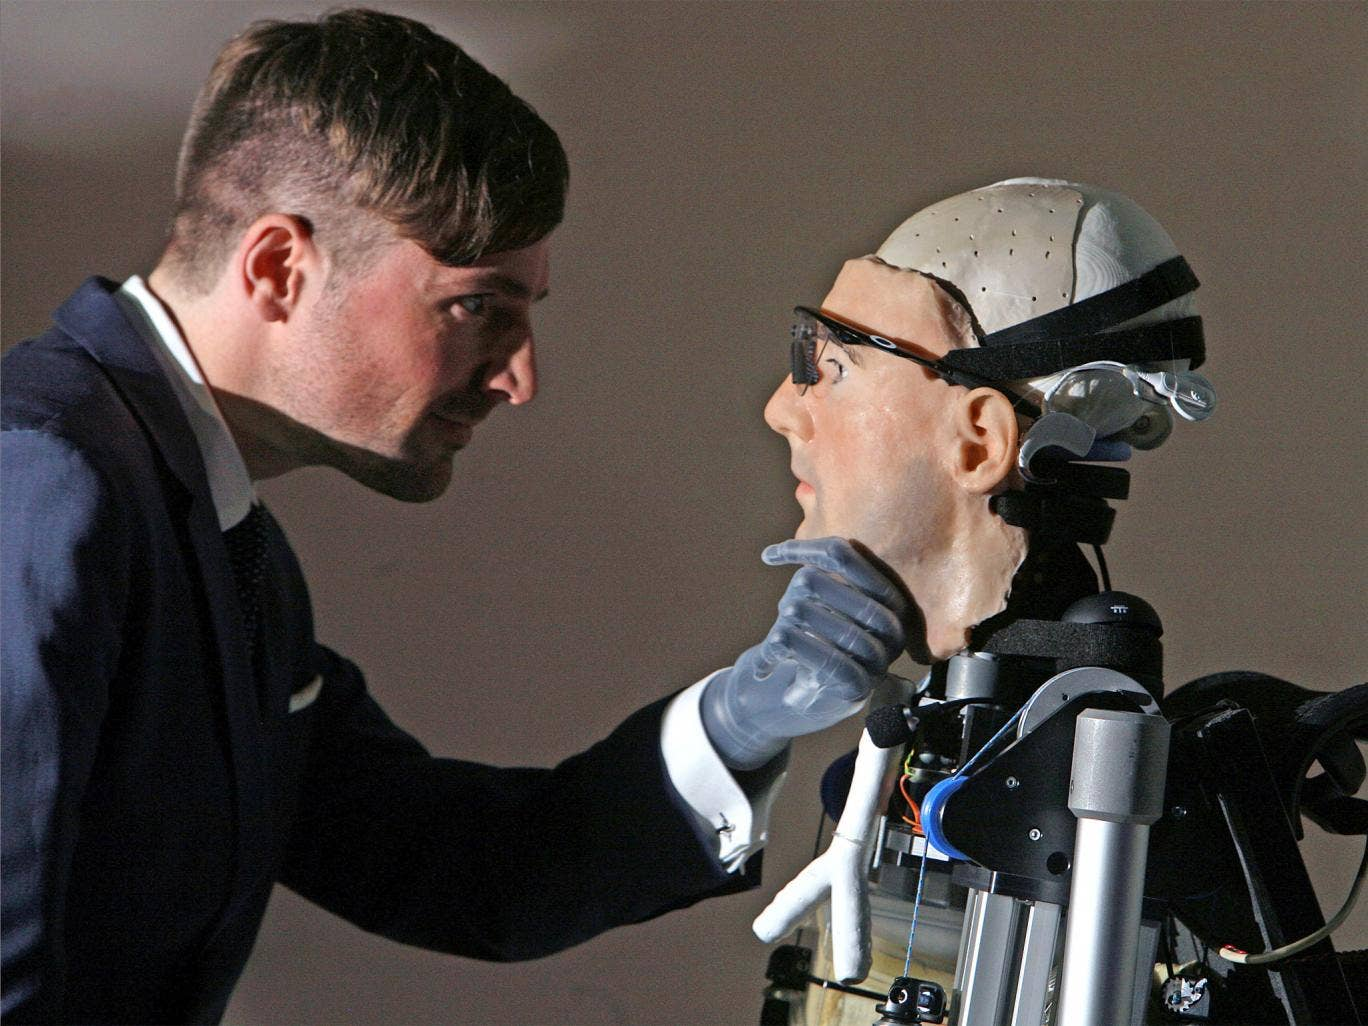 Documentary maker Bertolt Meyer (who has a bionic hand) is pictured examining 'Rex'